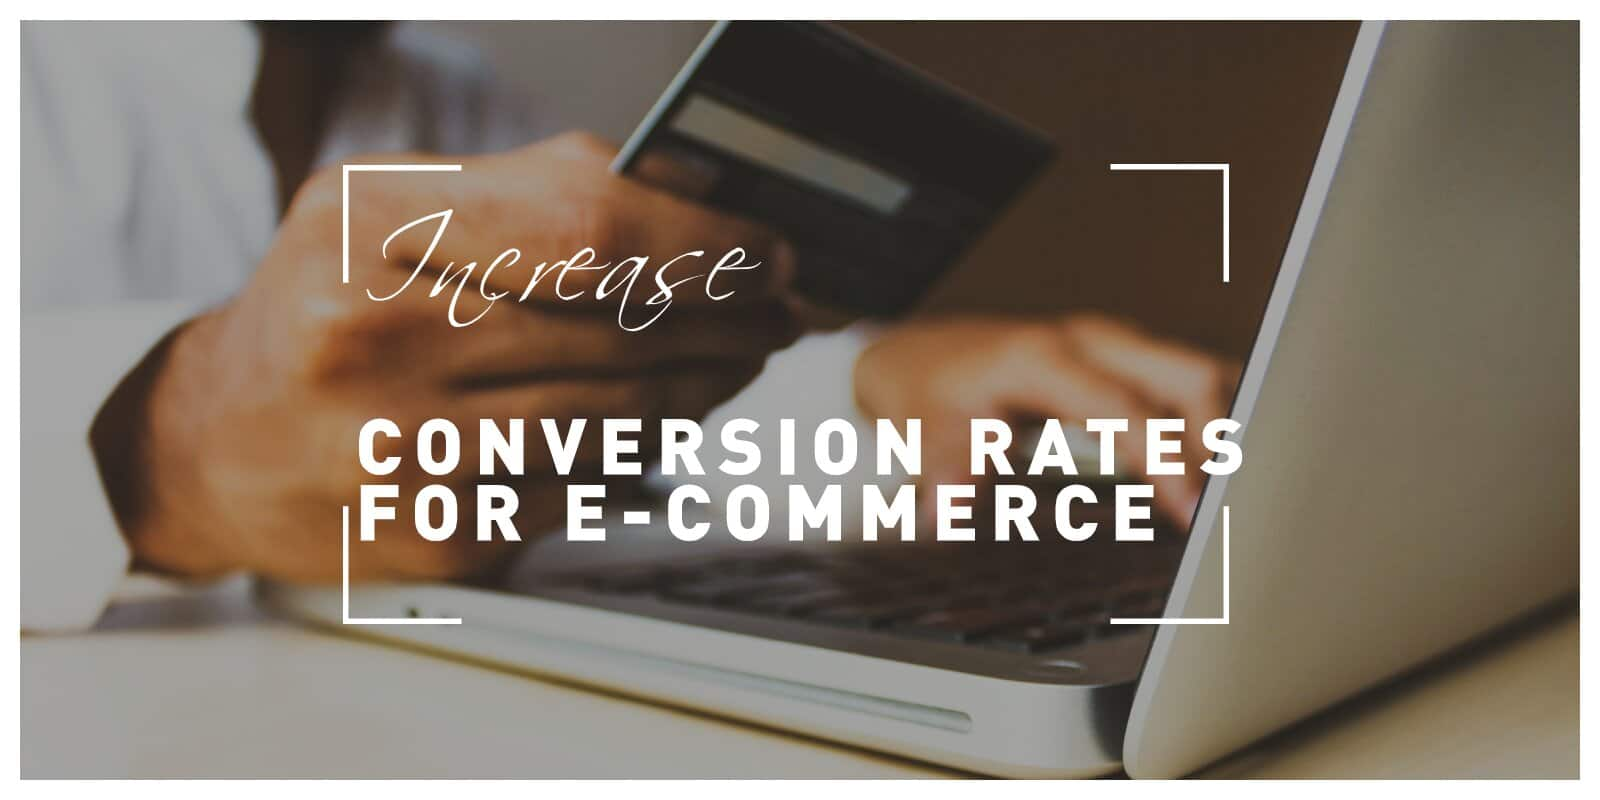 Increase Conversion Rates for E-commerce